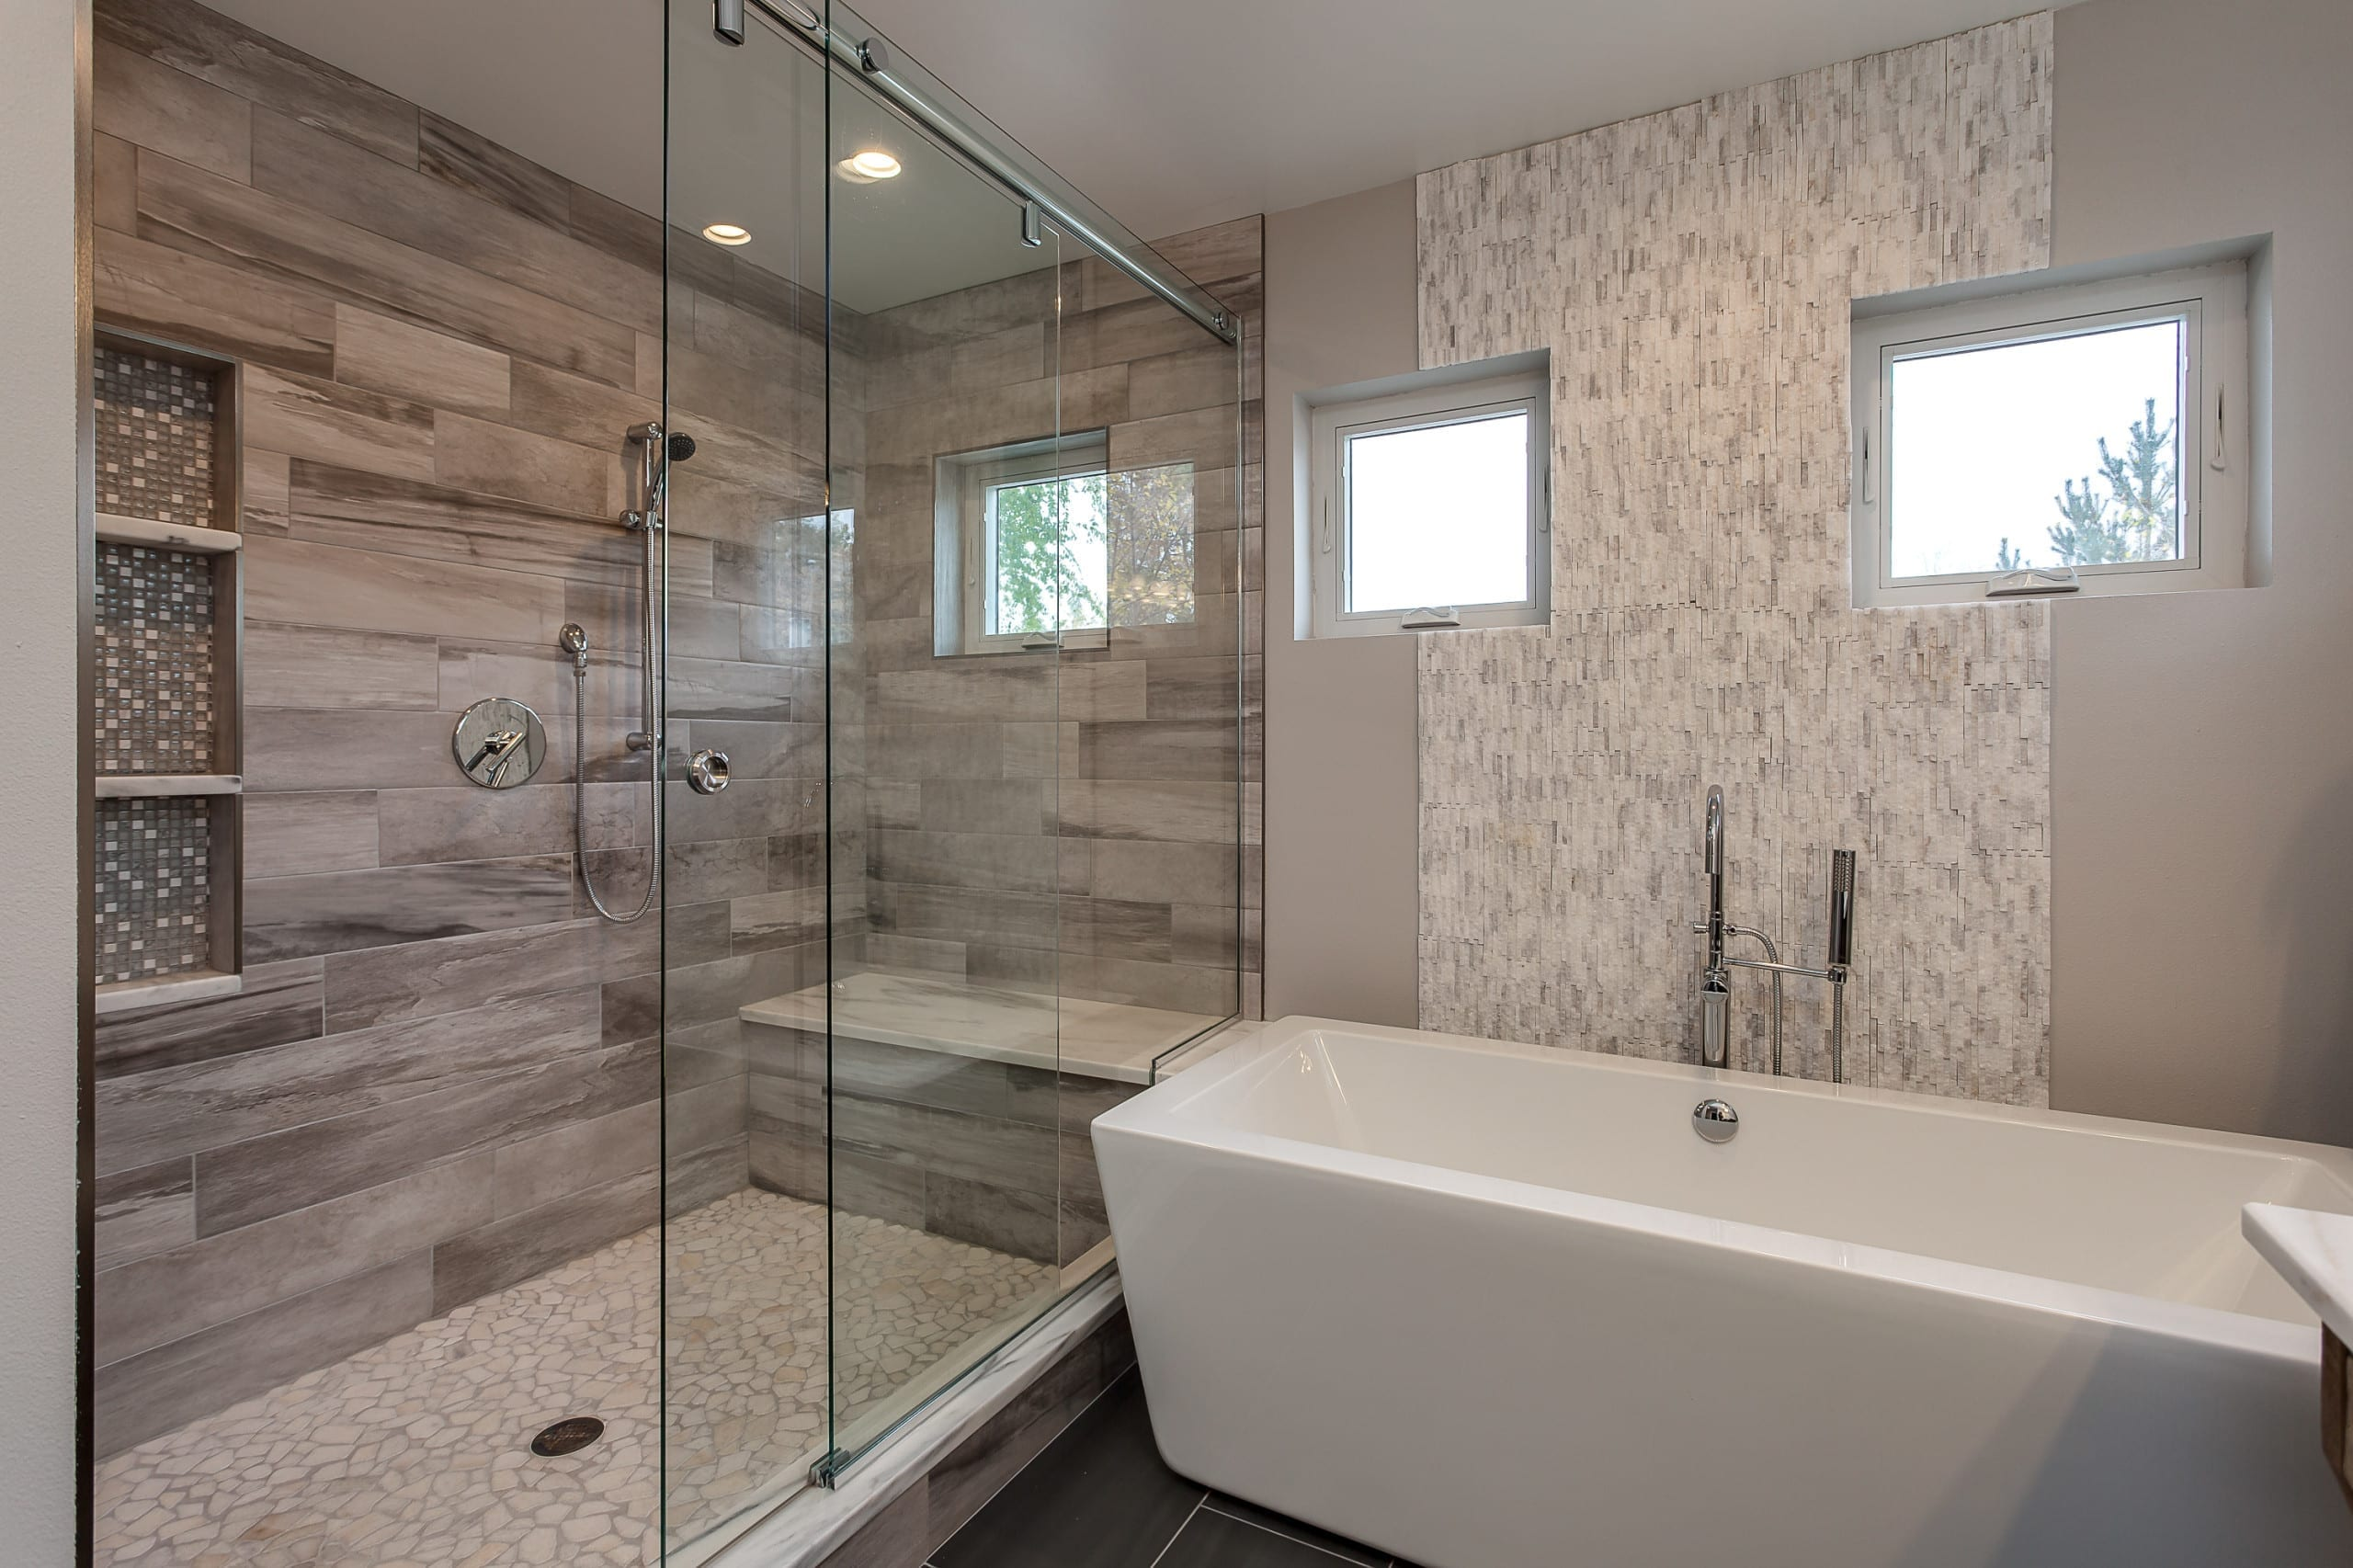 supreme international usa tampa orlando leading remodeling company for bathroom with walk in shower (8)